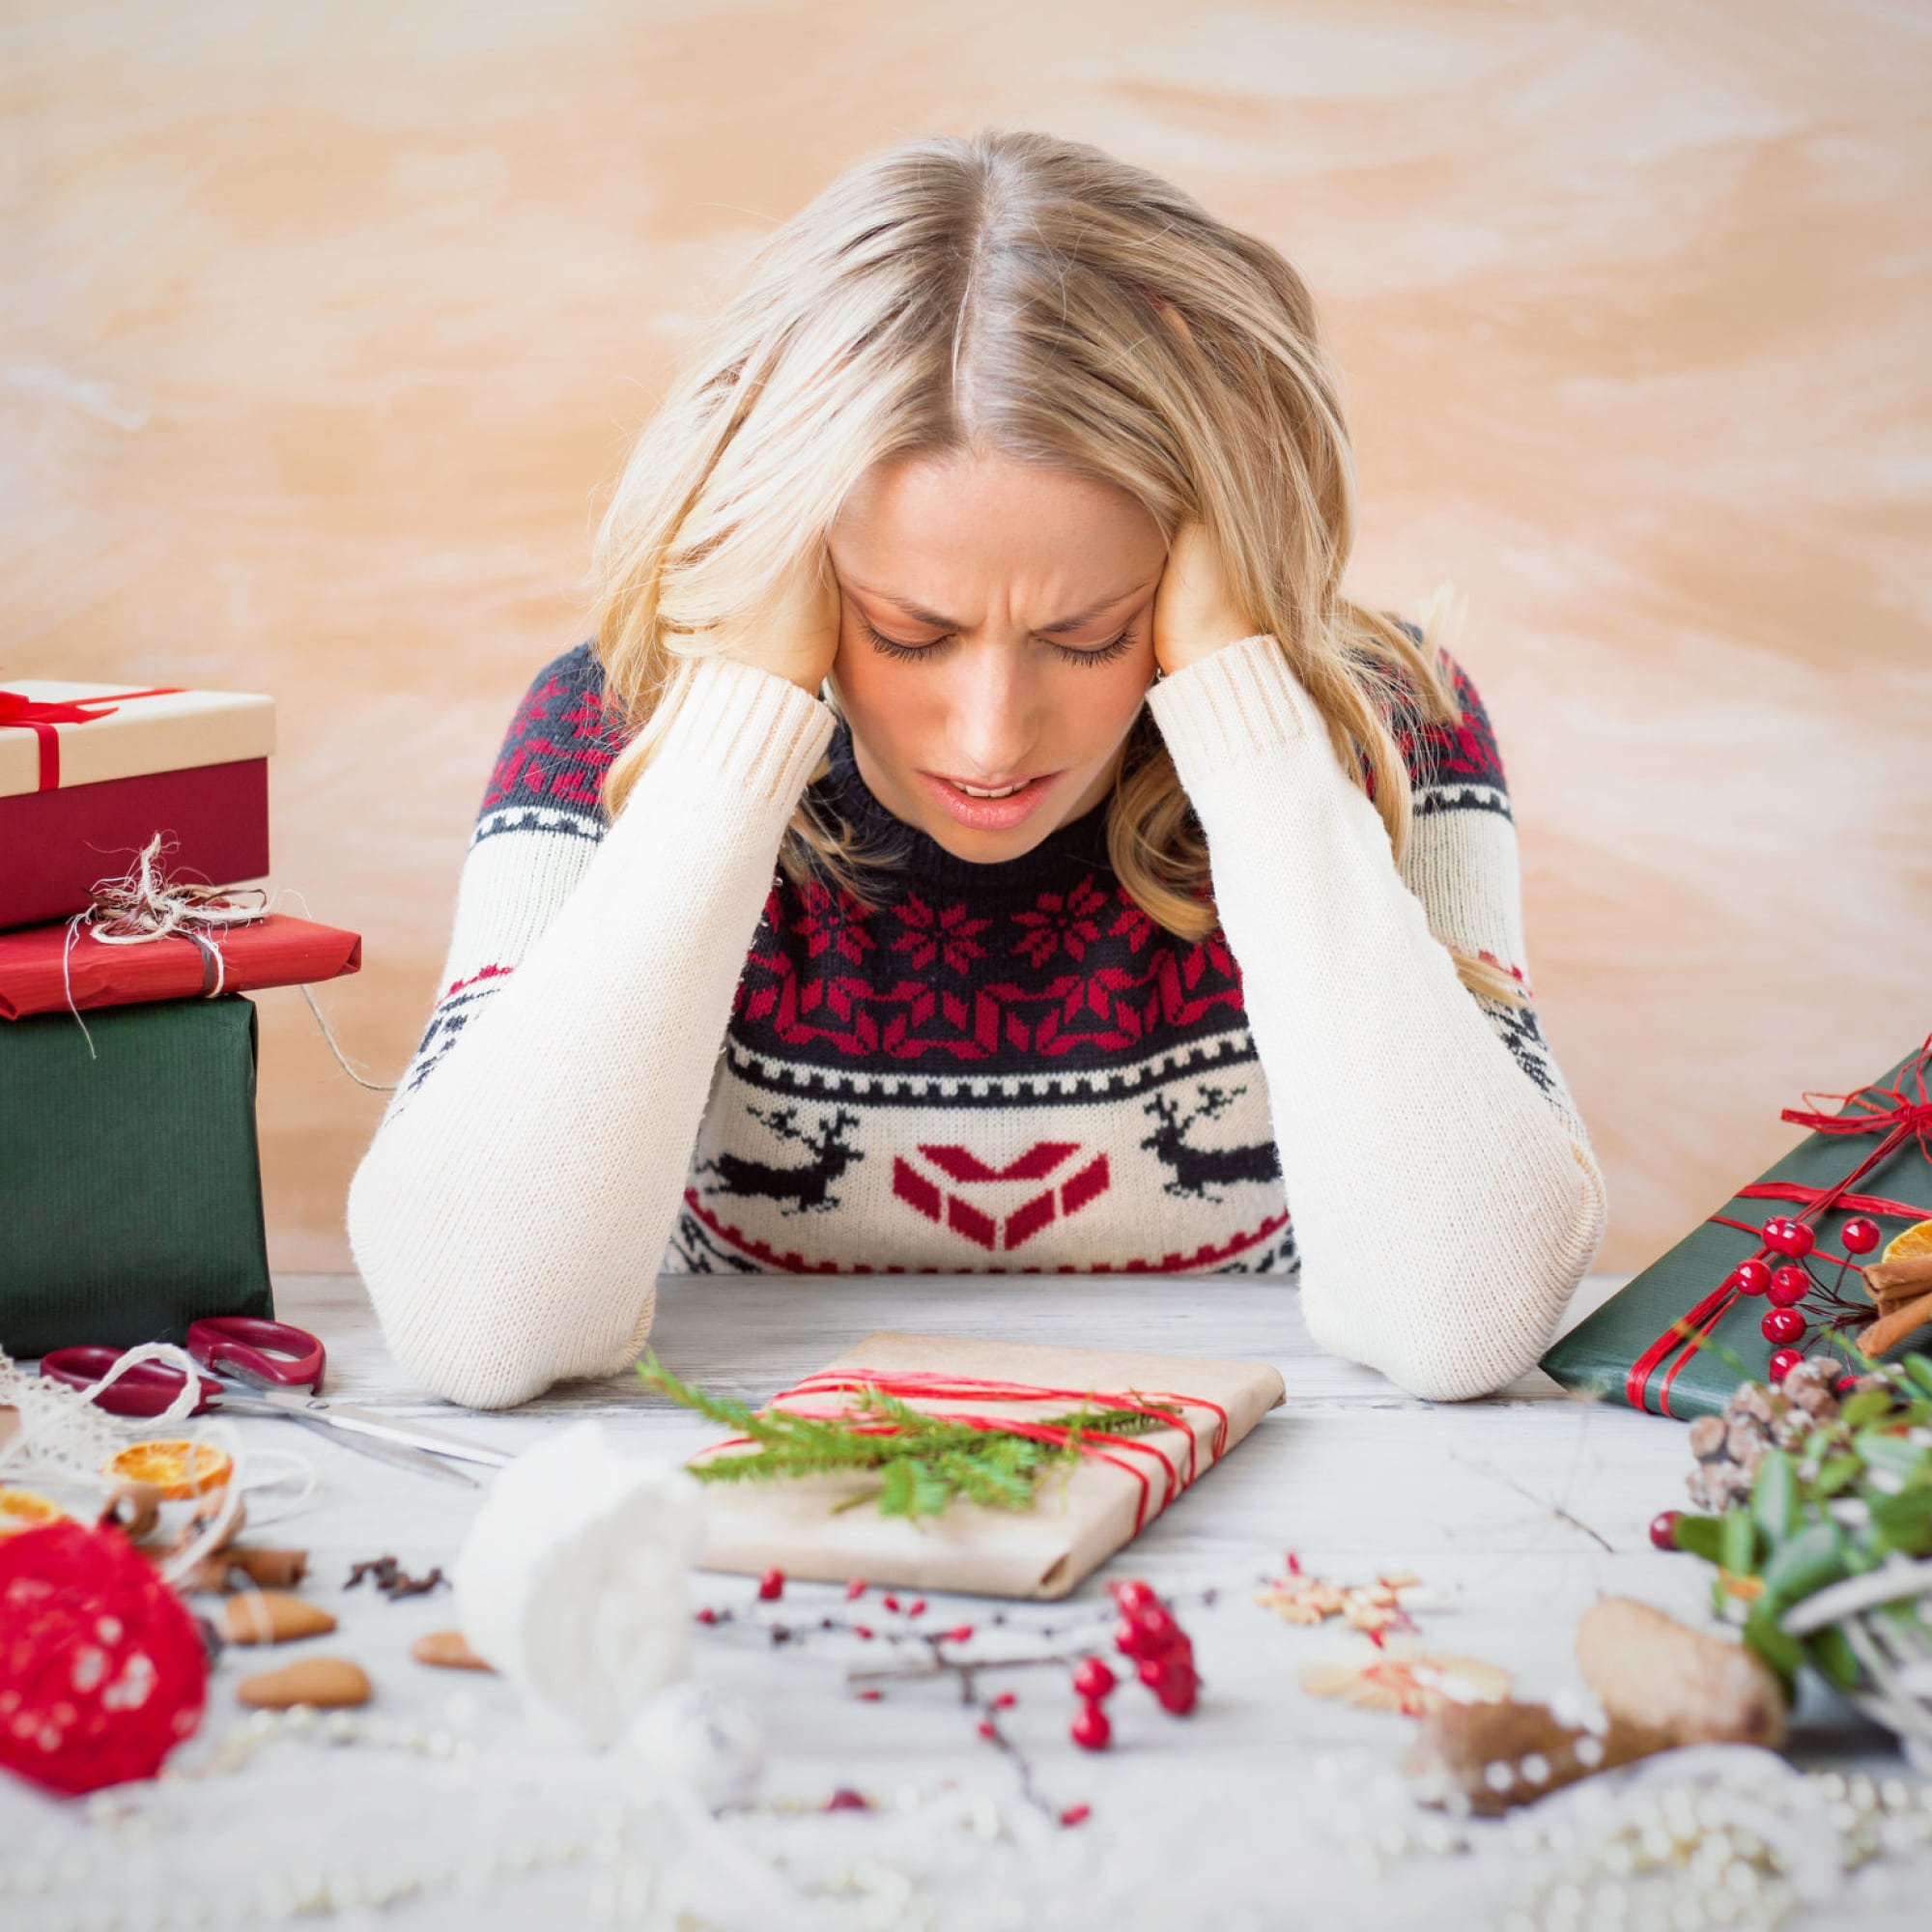 Fed up with holiday stress? The holidays are a time for celebrating, not worrying!